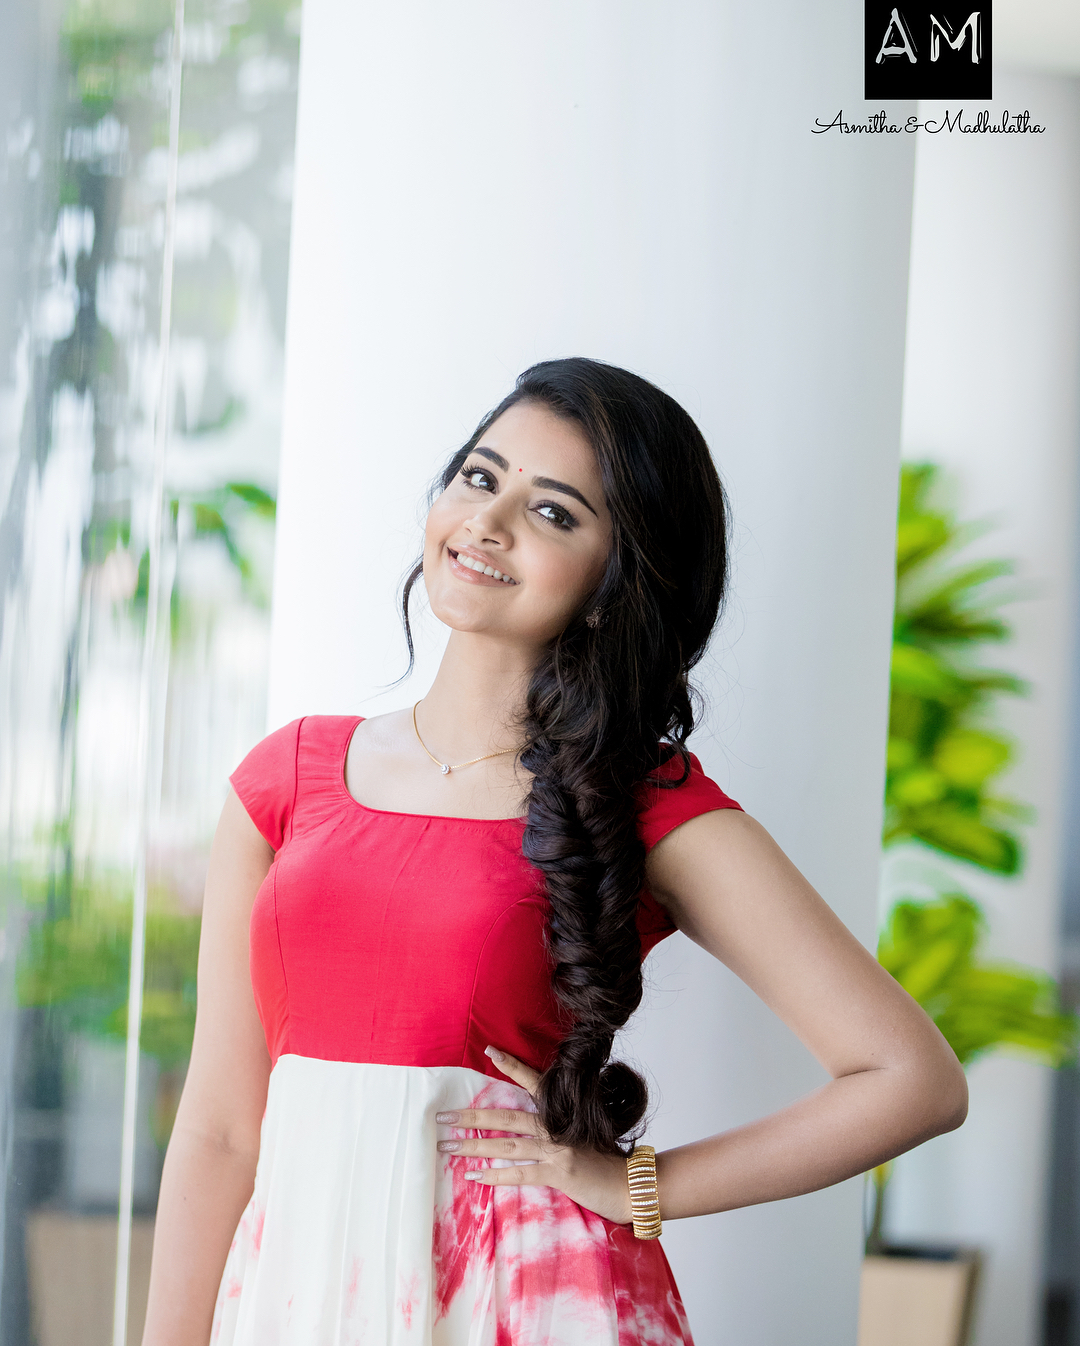 Anupama Parameswaran wearing Clothes designed by Asmitha and Madhulatha